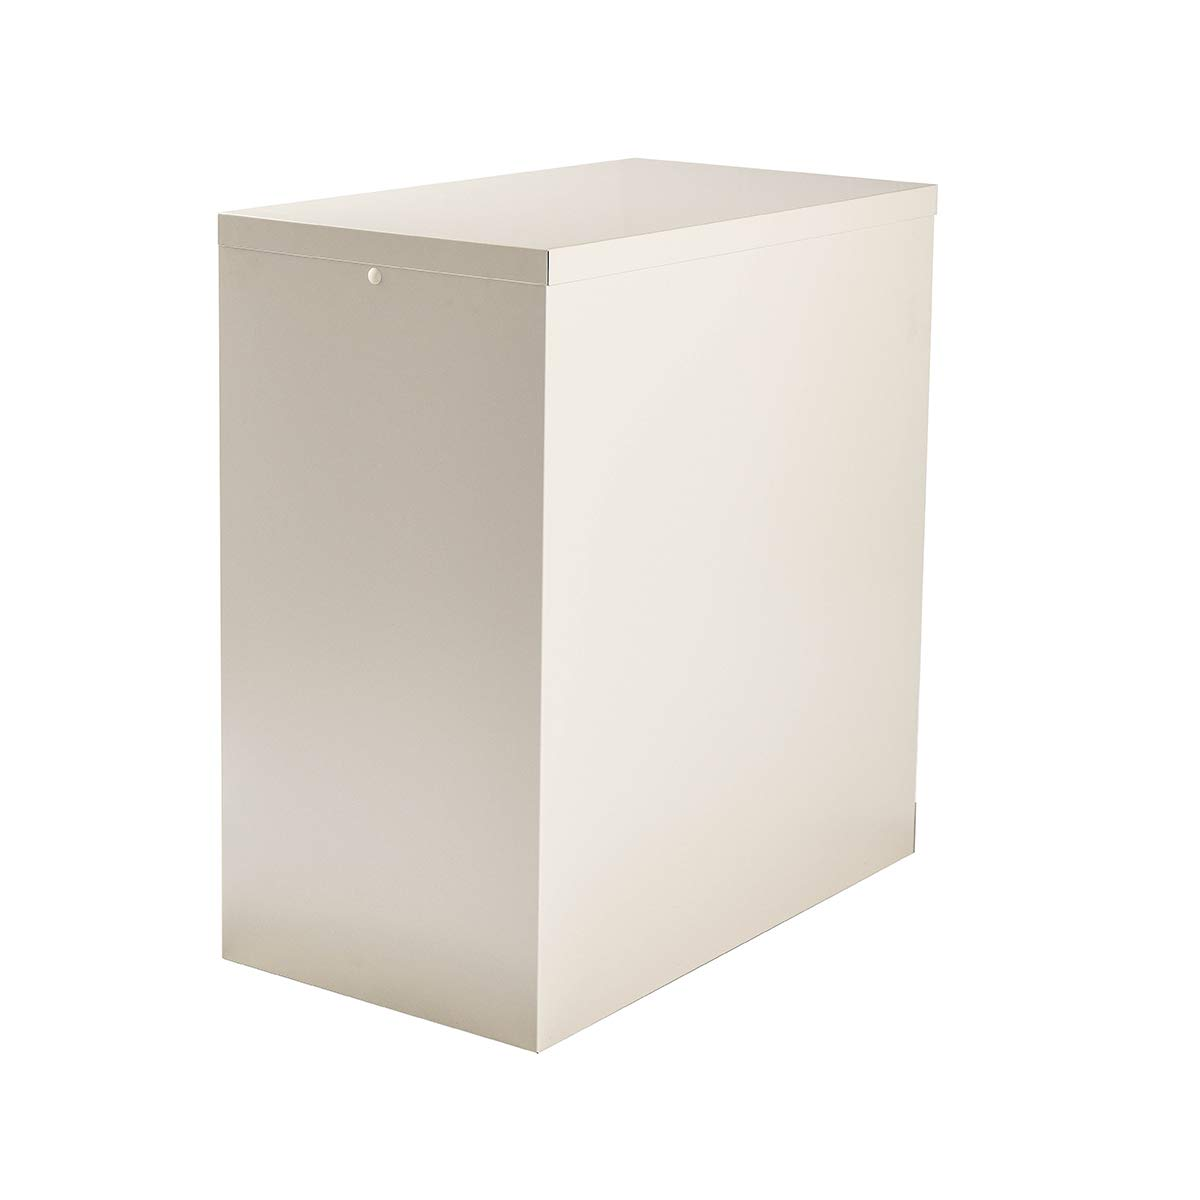 2-Drawers File Cabinet with Lock Metal Rails Hanging Letter-Size Commercial 26.5''Deep for Office Storage Home(Putty White) by YURUCY (Image #1)